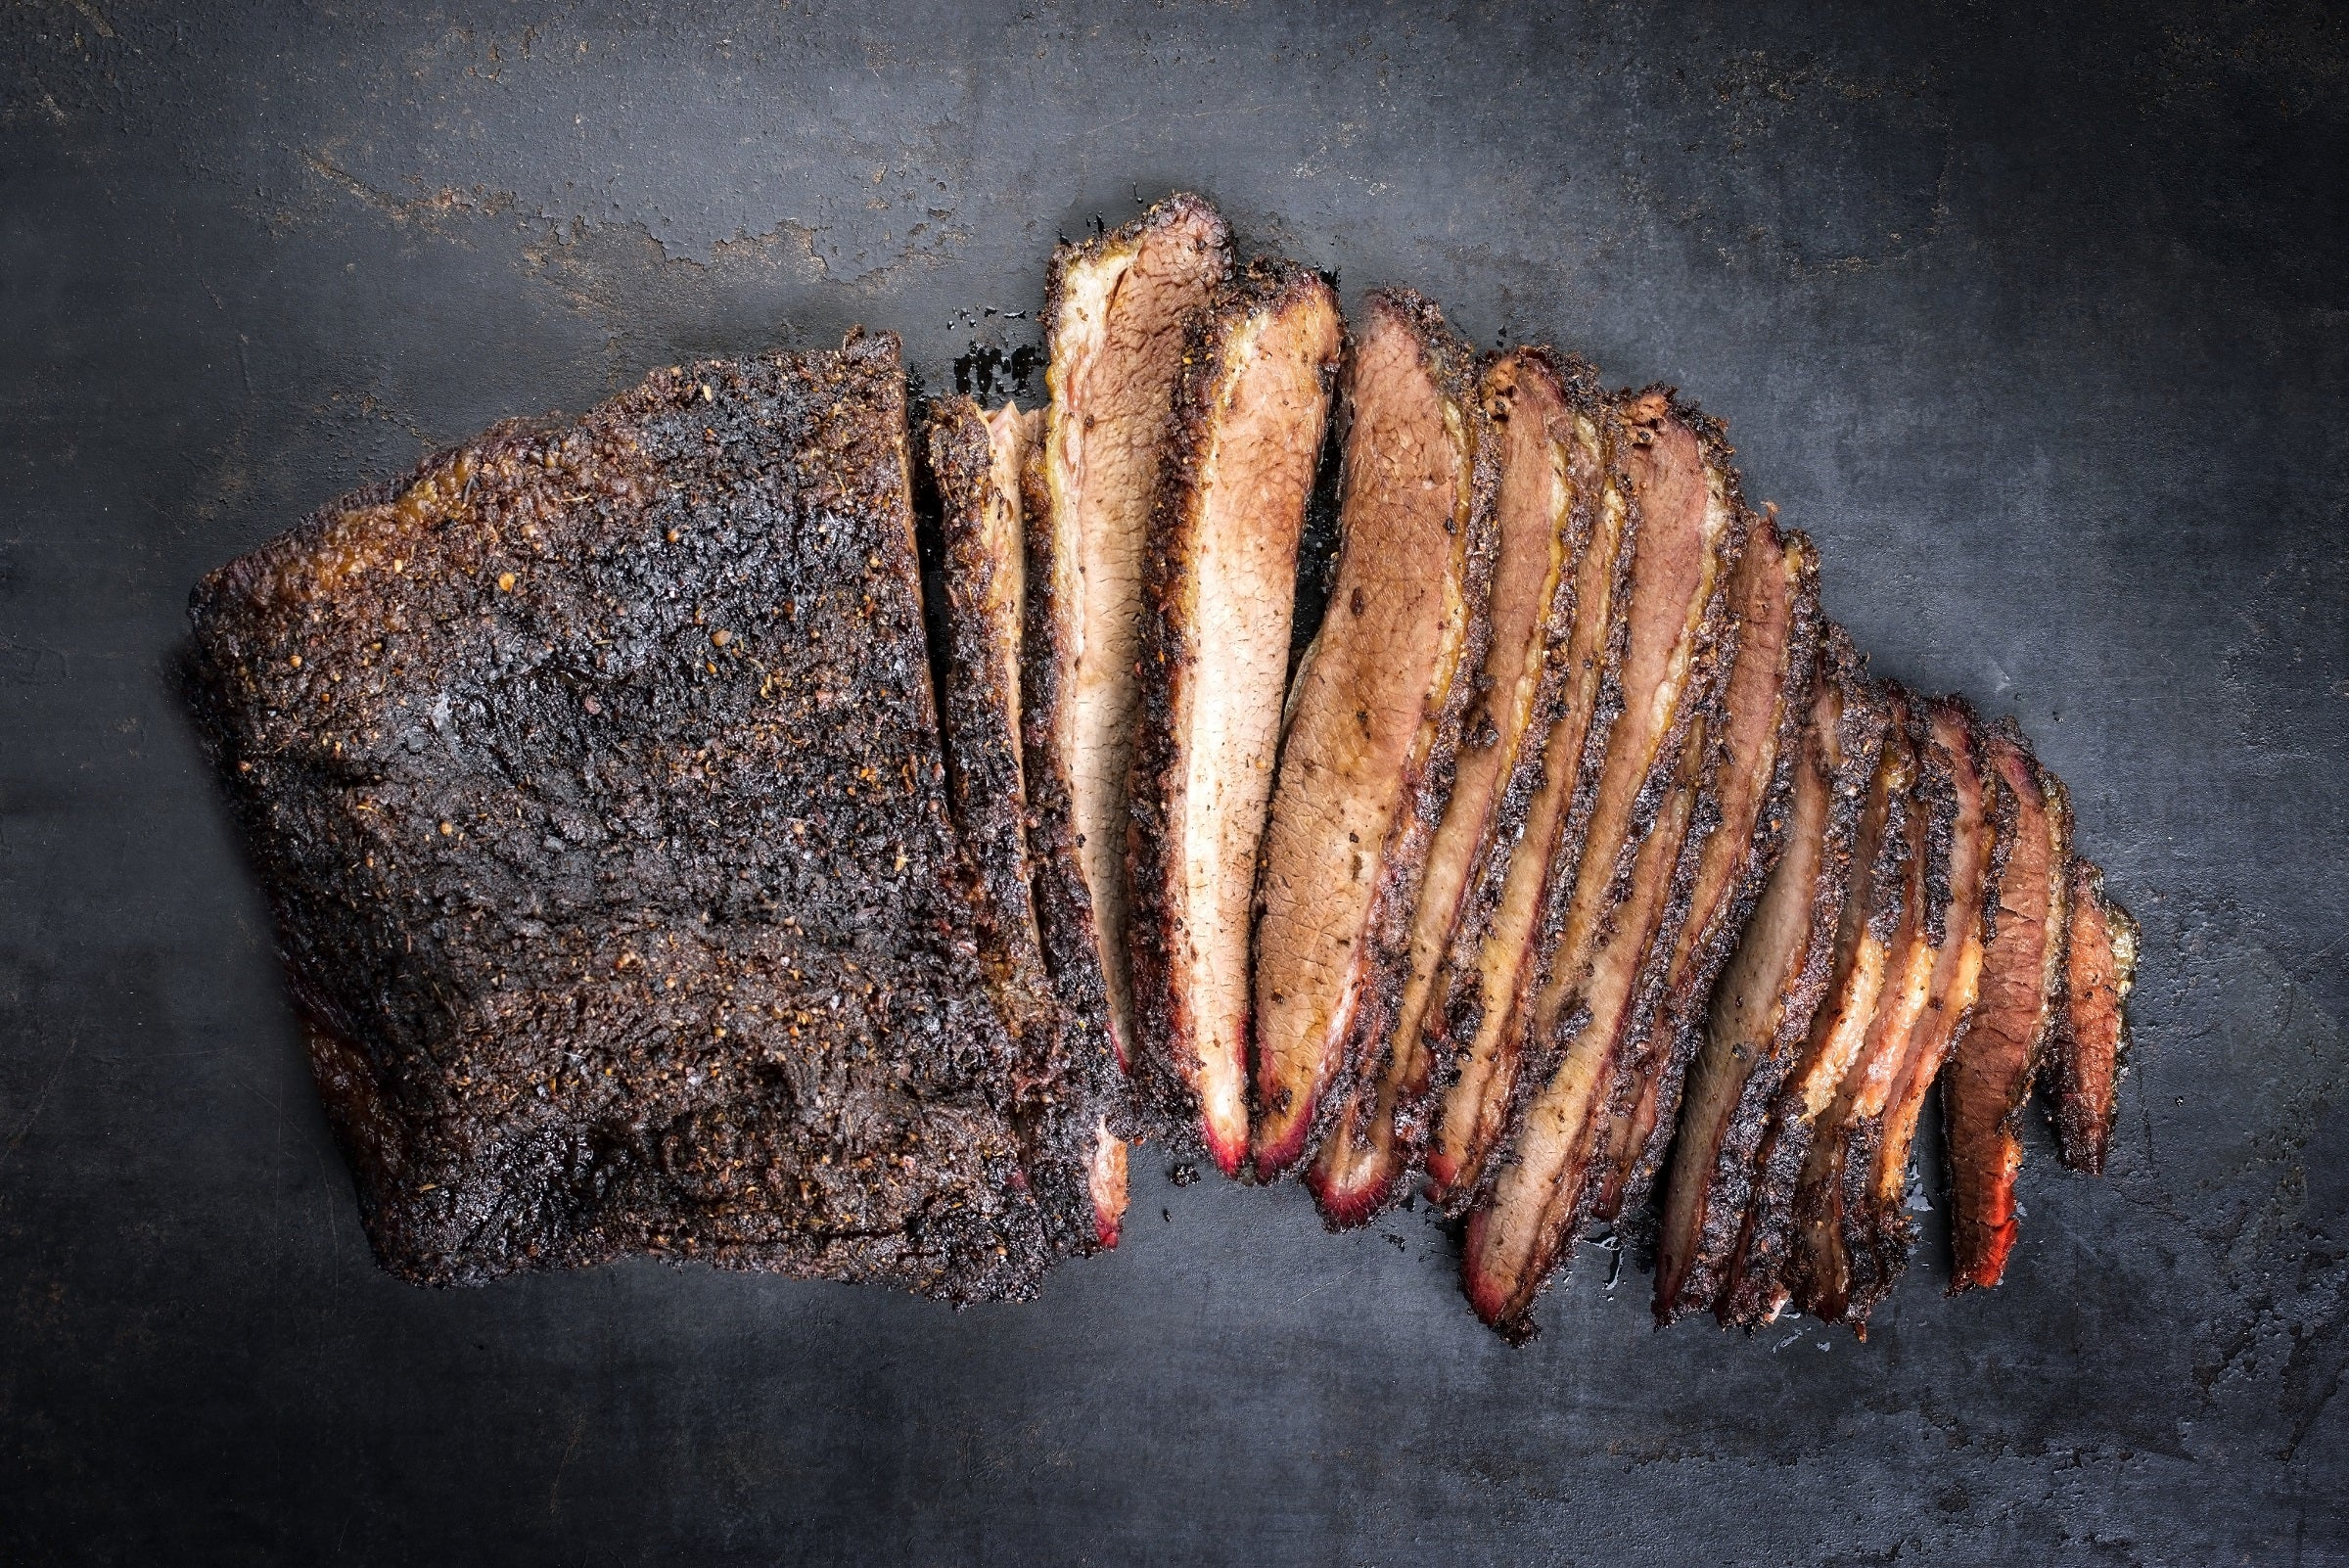 Whole Freedown Hills Olive Fed Wagyu Navel End Brisket (±3kg; £25.33/kg; Frozen)